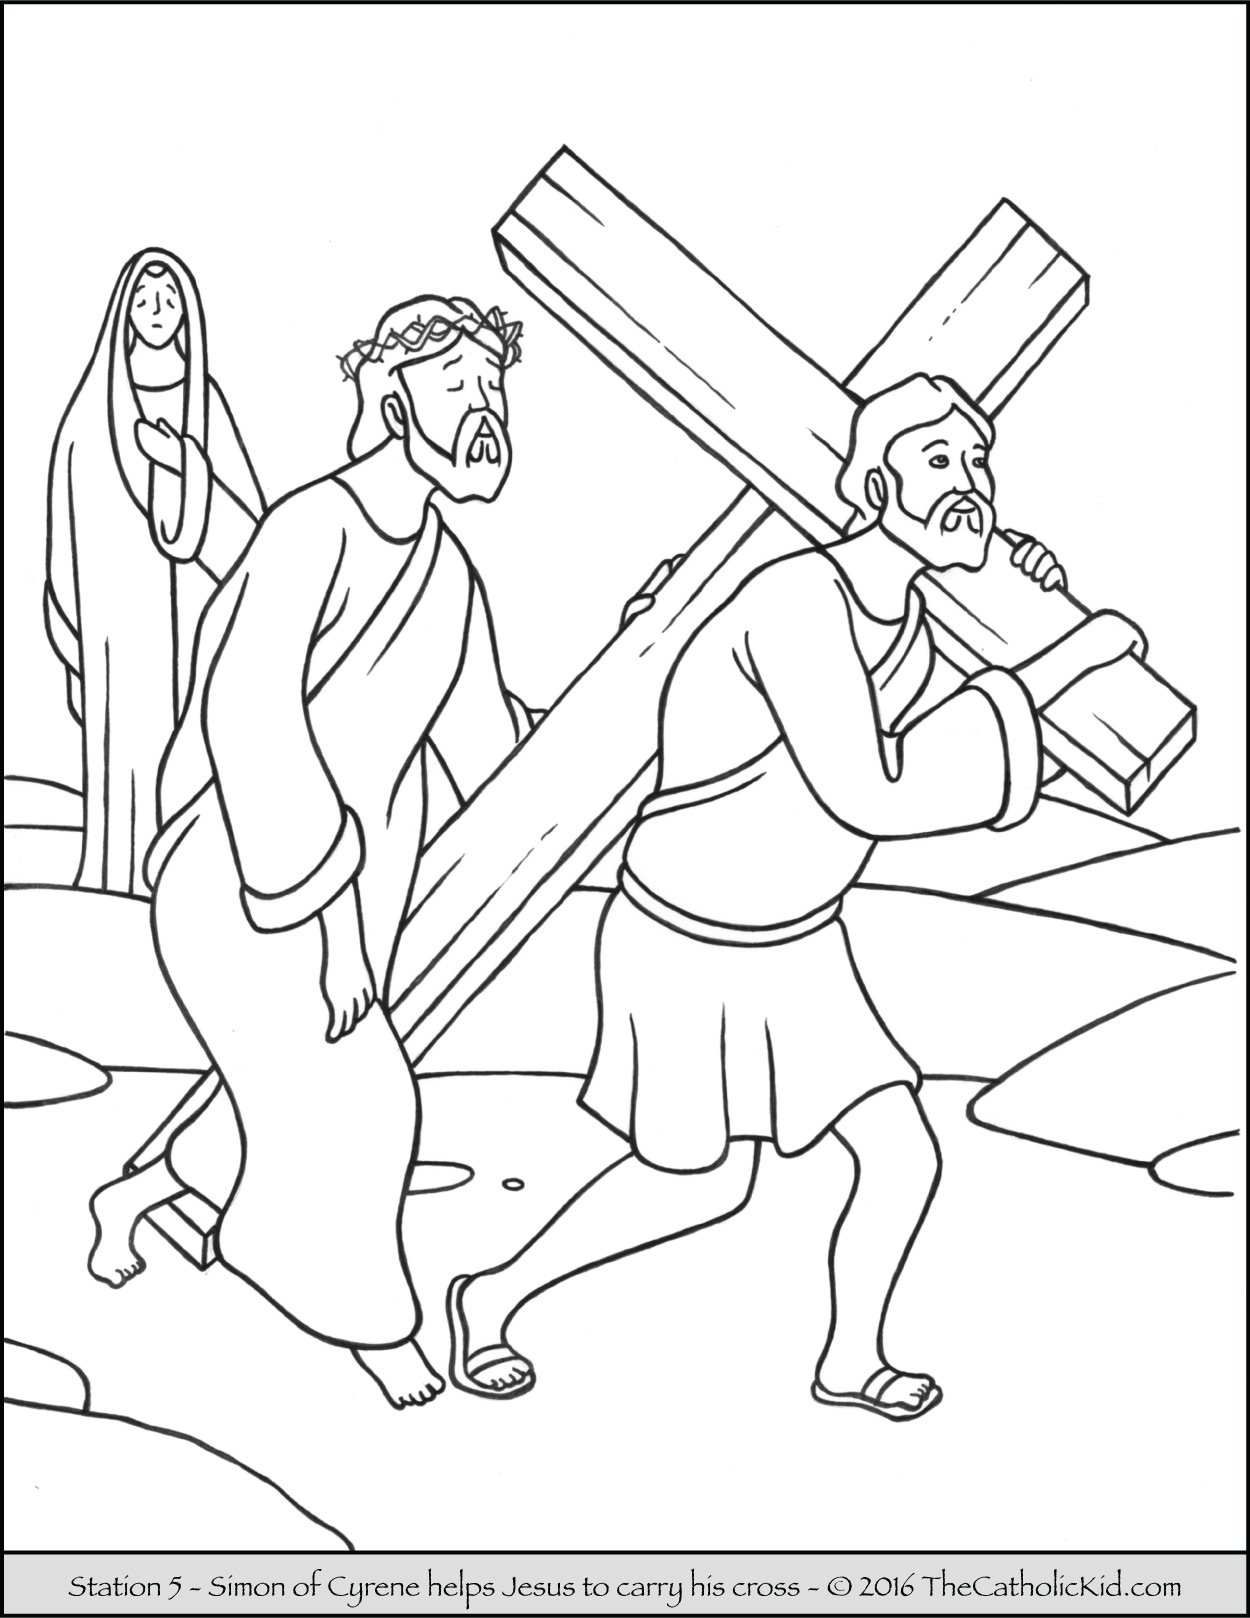 Coloring Pages For Following Jesus. Stations of the Cross Coloring Pages 5  Simon Cyrene helps Jesus to carry His